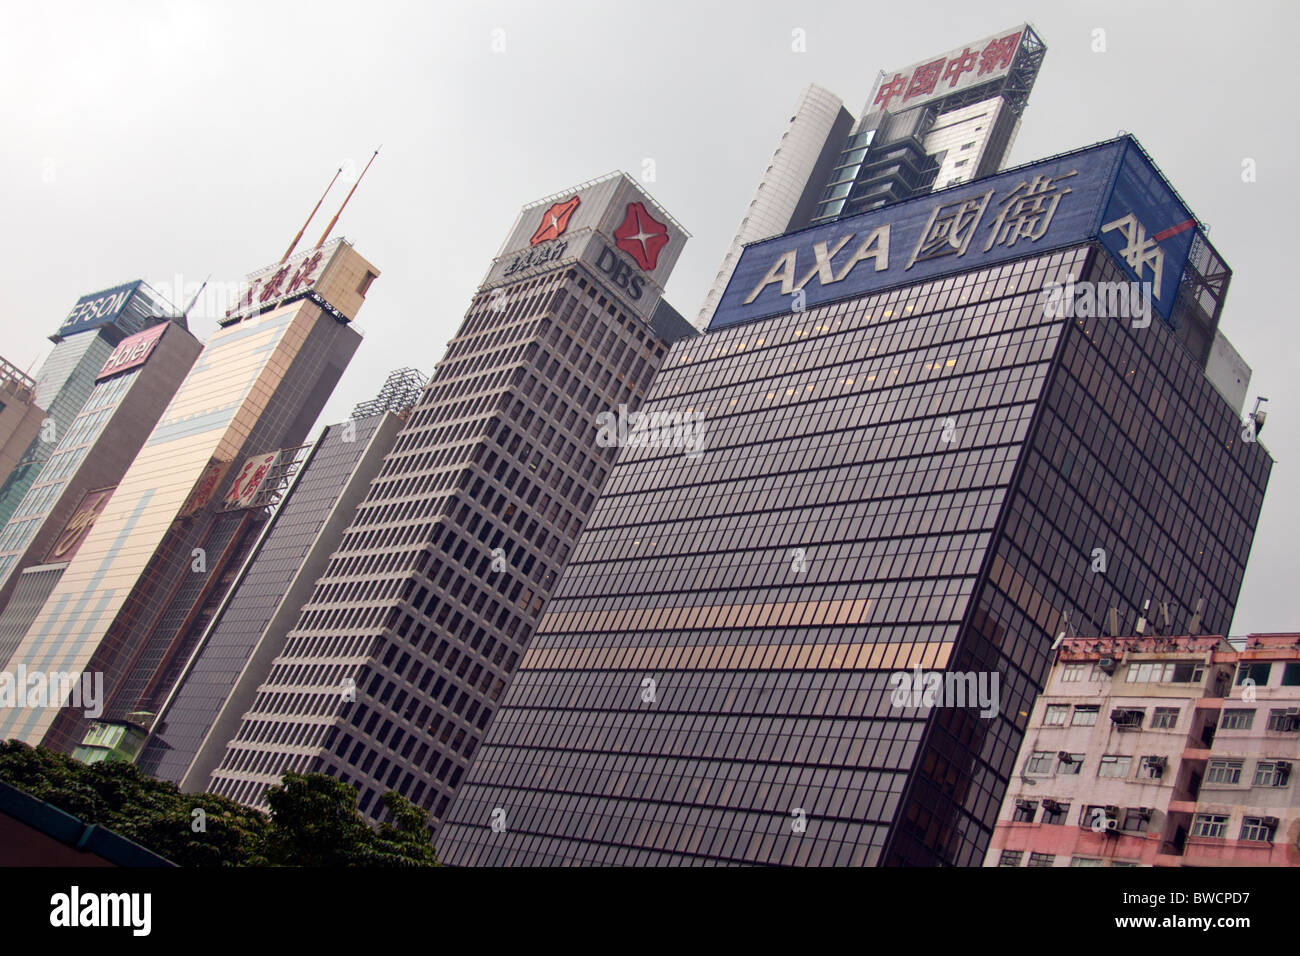 Detail of the sky scrapers in Central Hong Kong Axa building - Stock Image